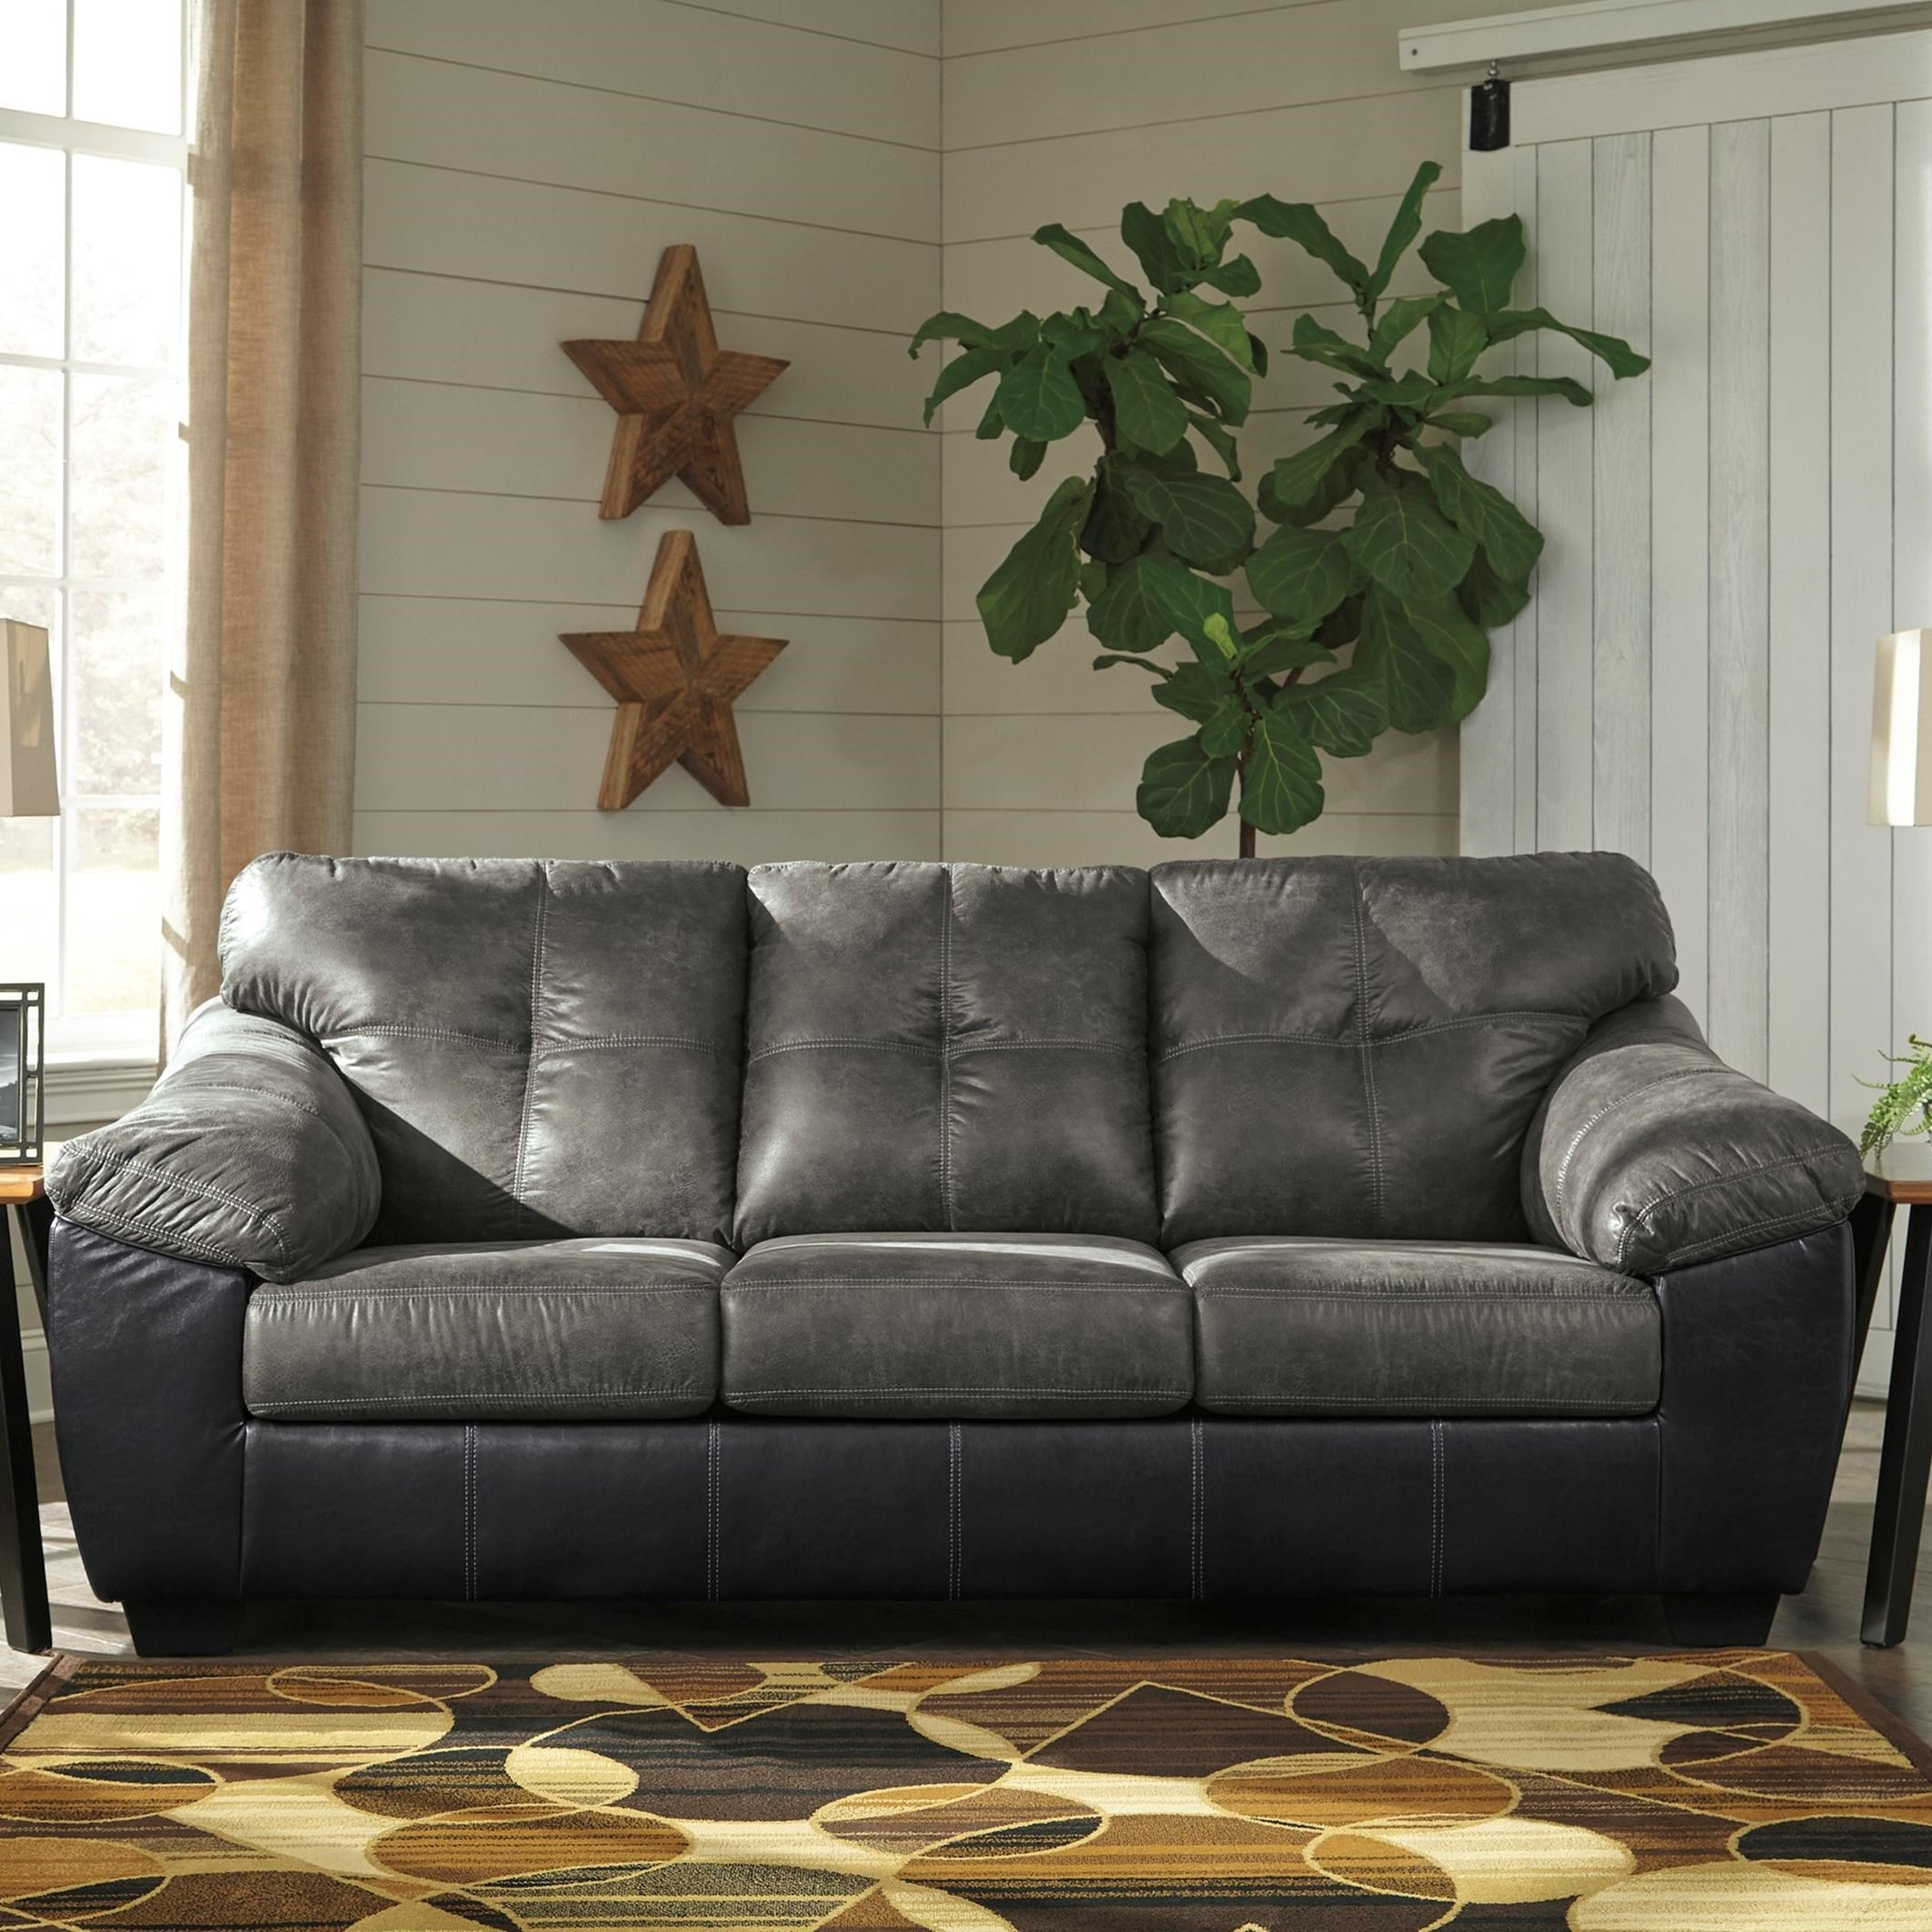 Two Tone Faux Leather Sofa with Pillow Arms